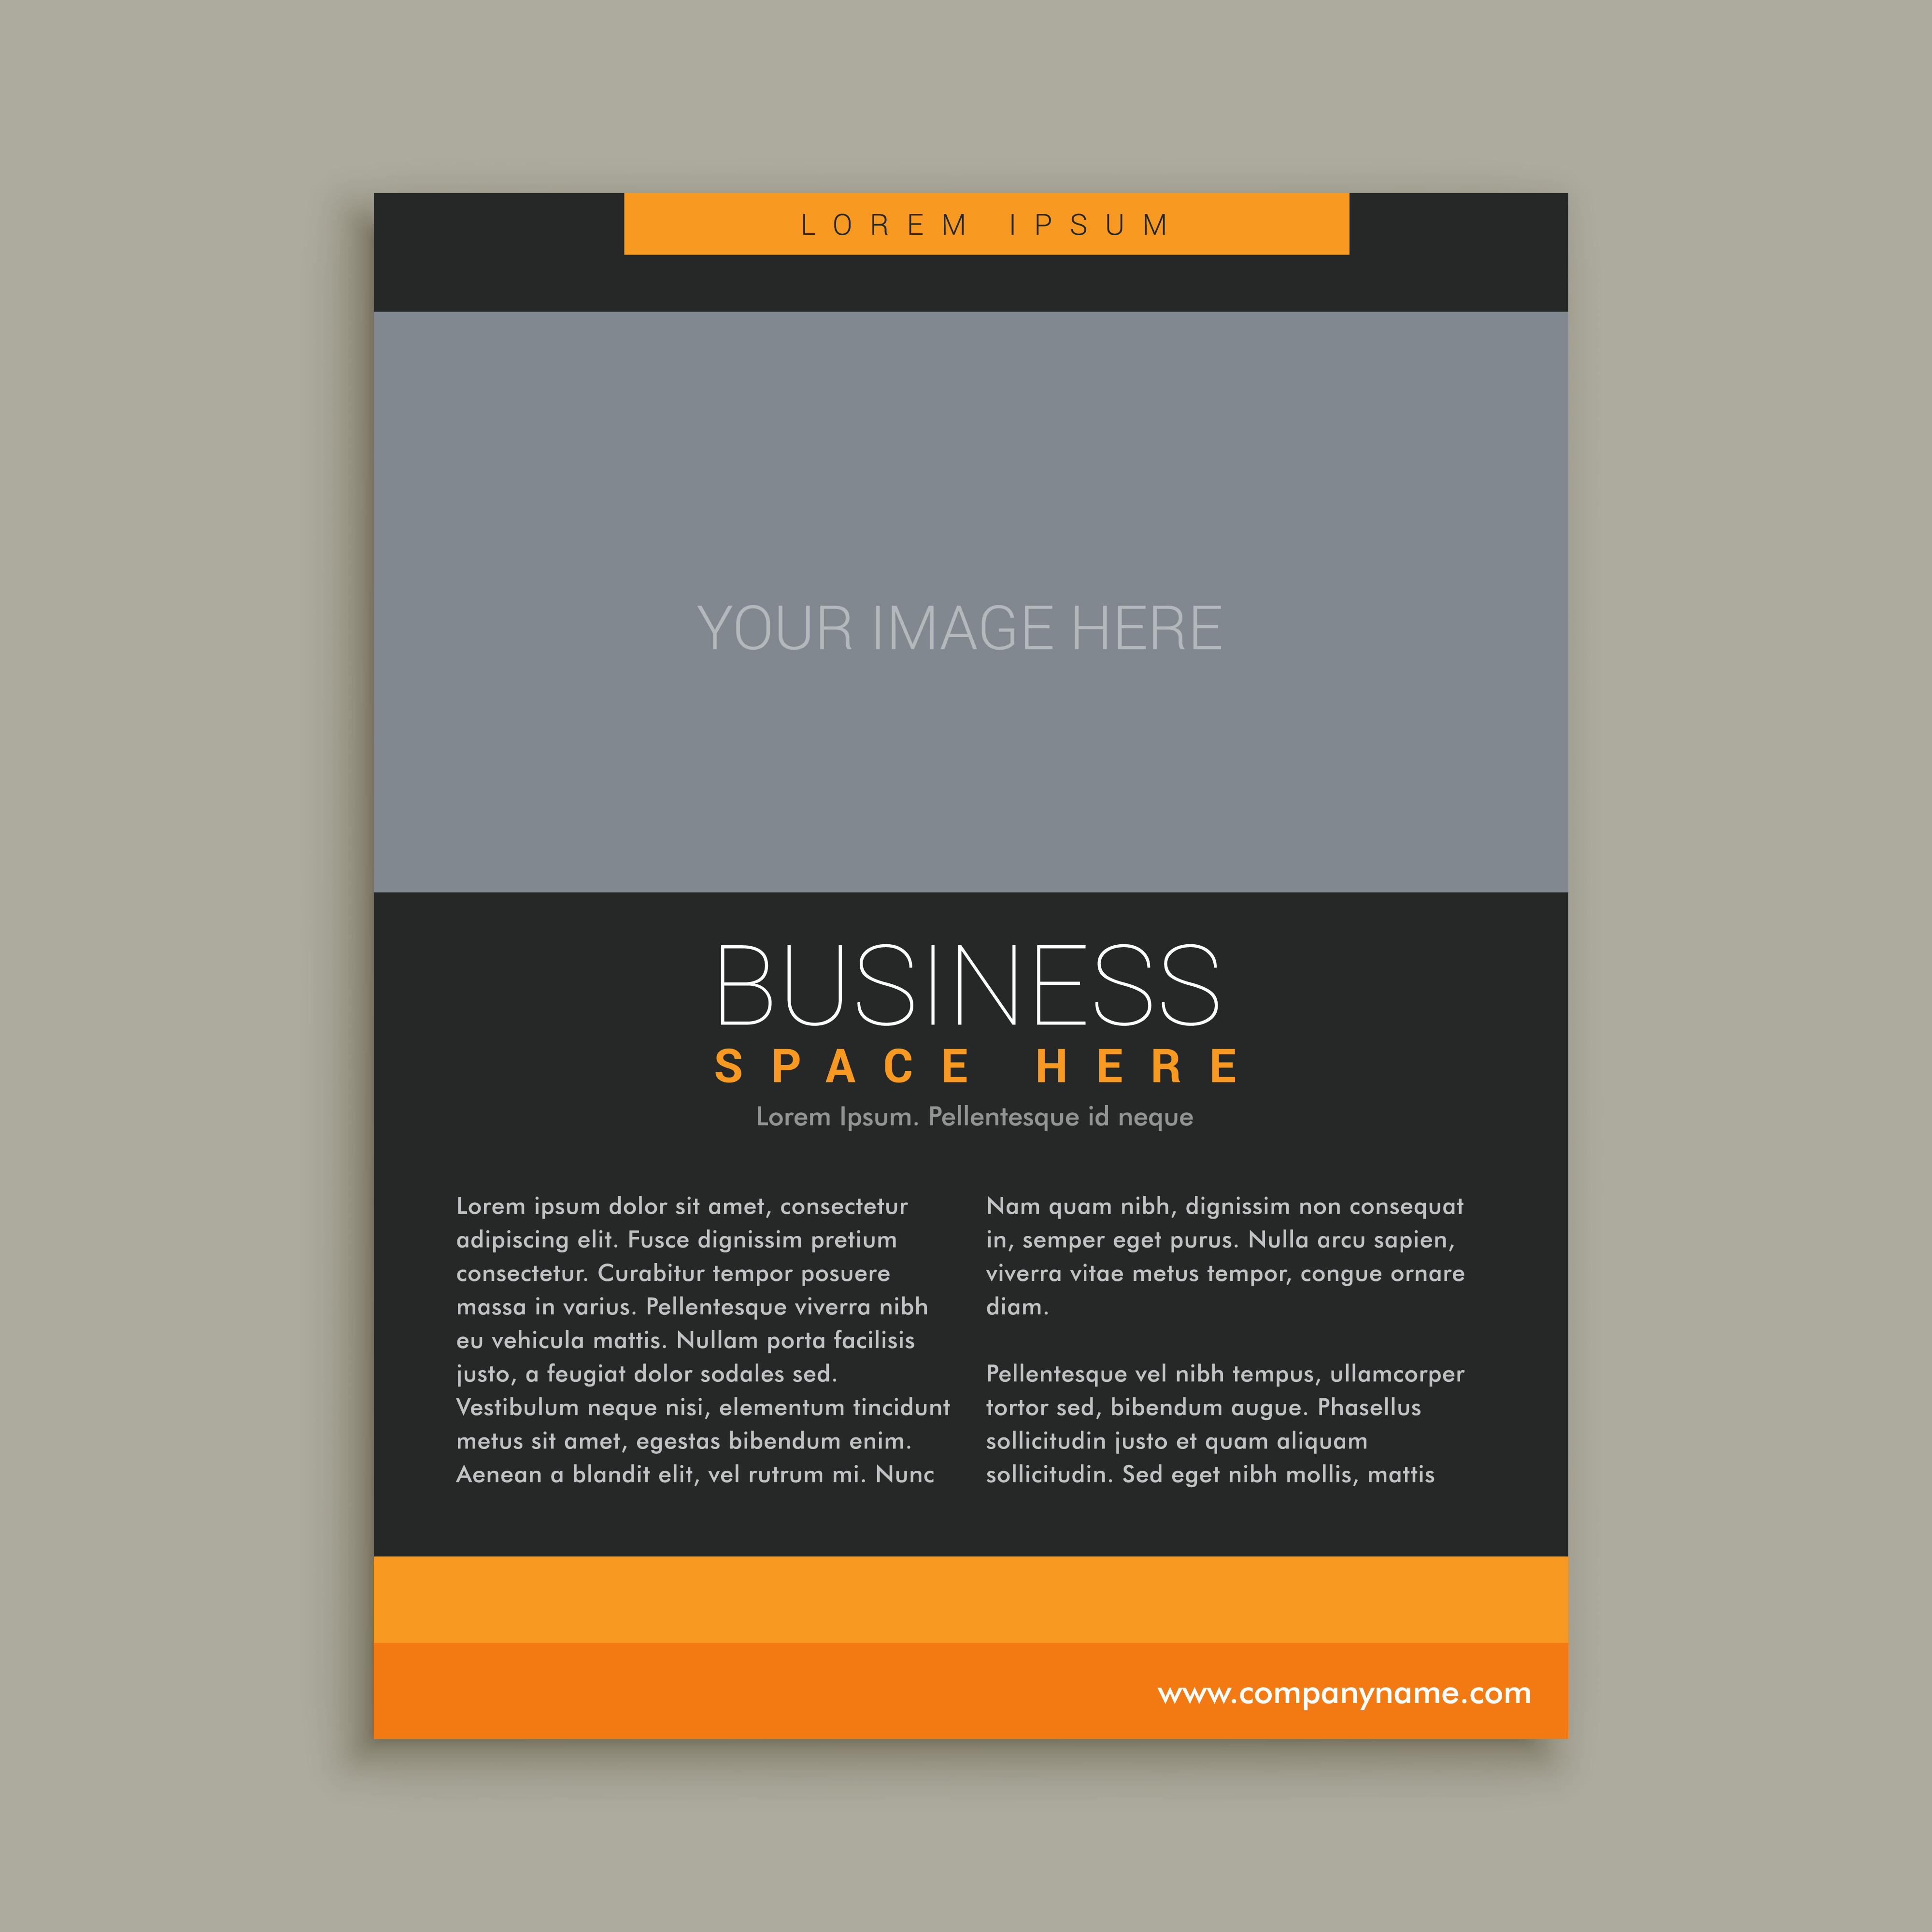 business brochure template in yellow and black color